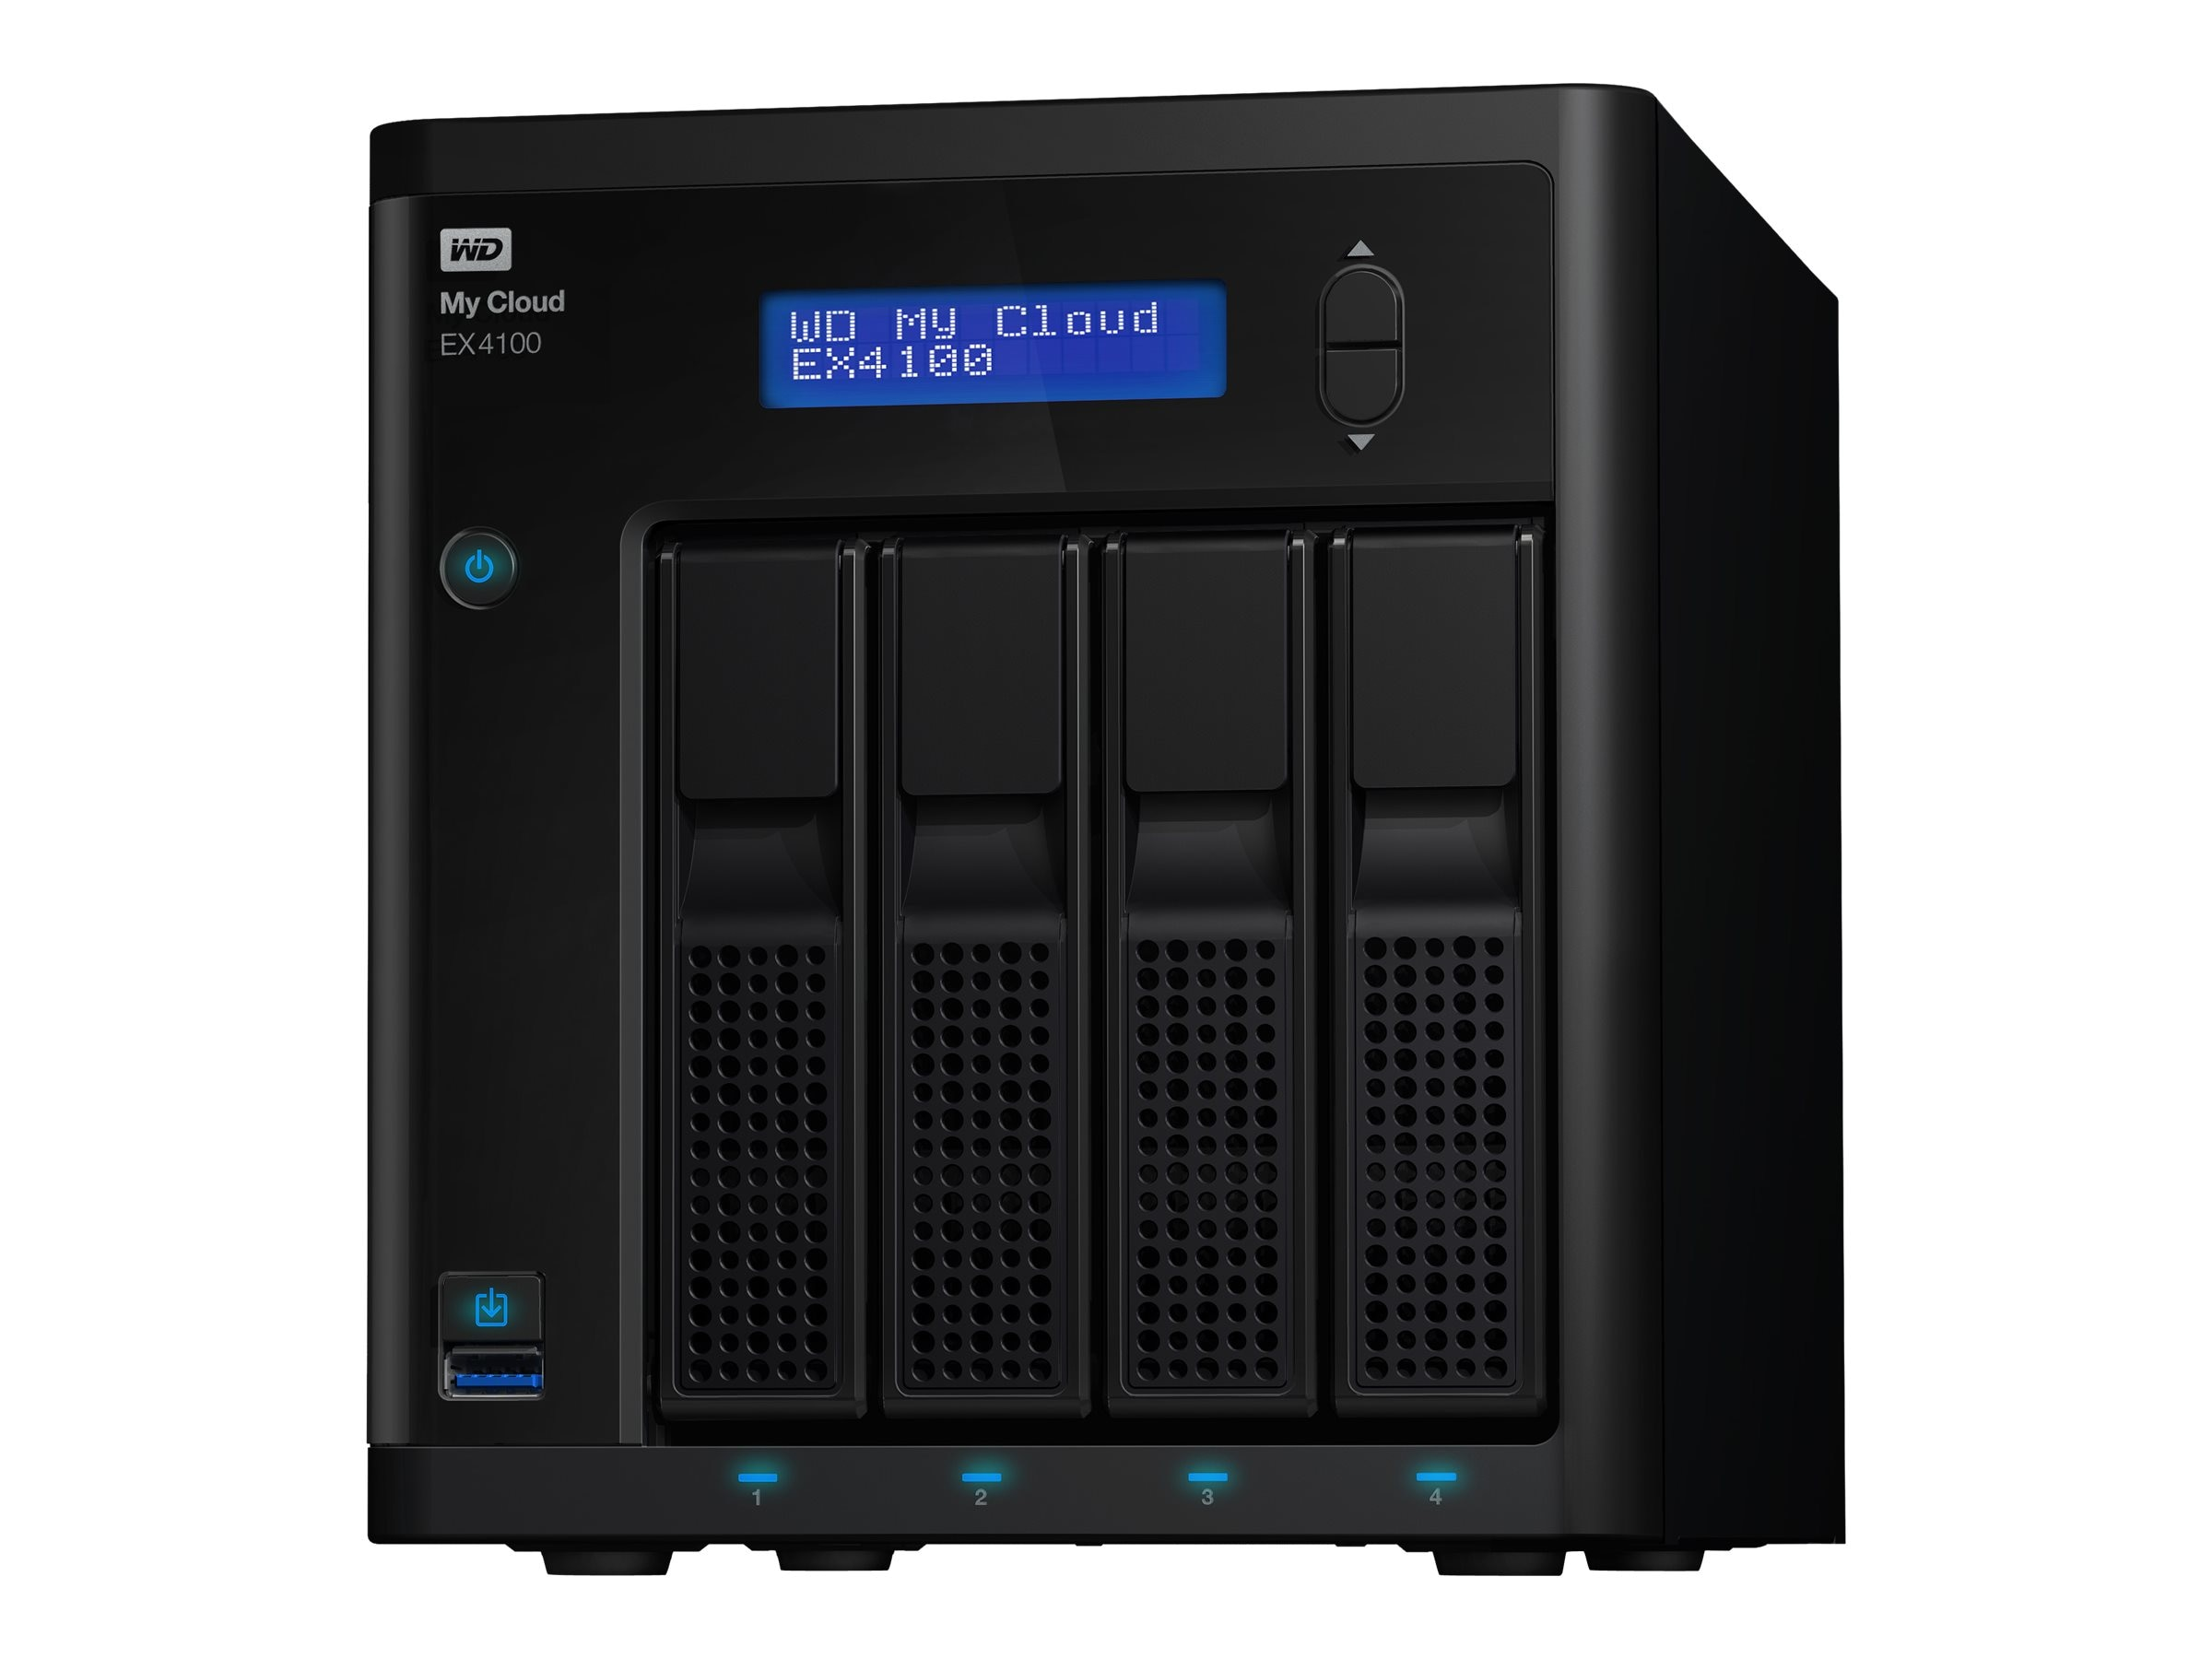 WD My Cloud EX4100 Network Attached Storage - Diskless, WDBWZE0000NBK-NESN, 18442835, Network Attached Storage